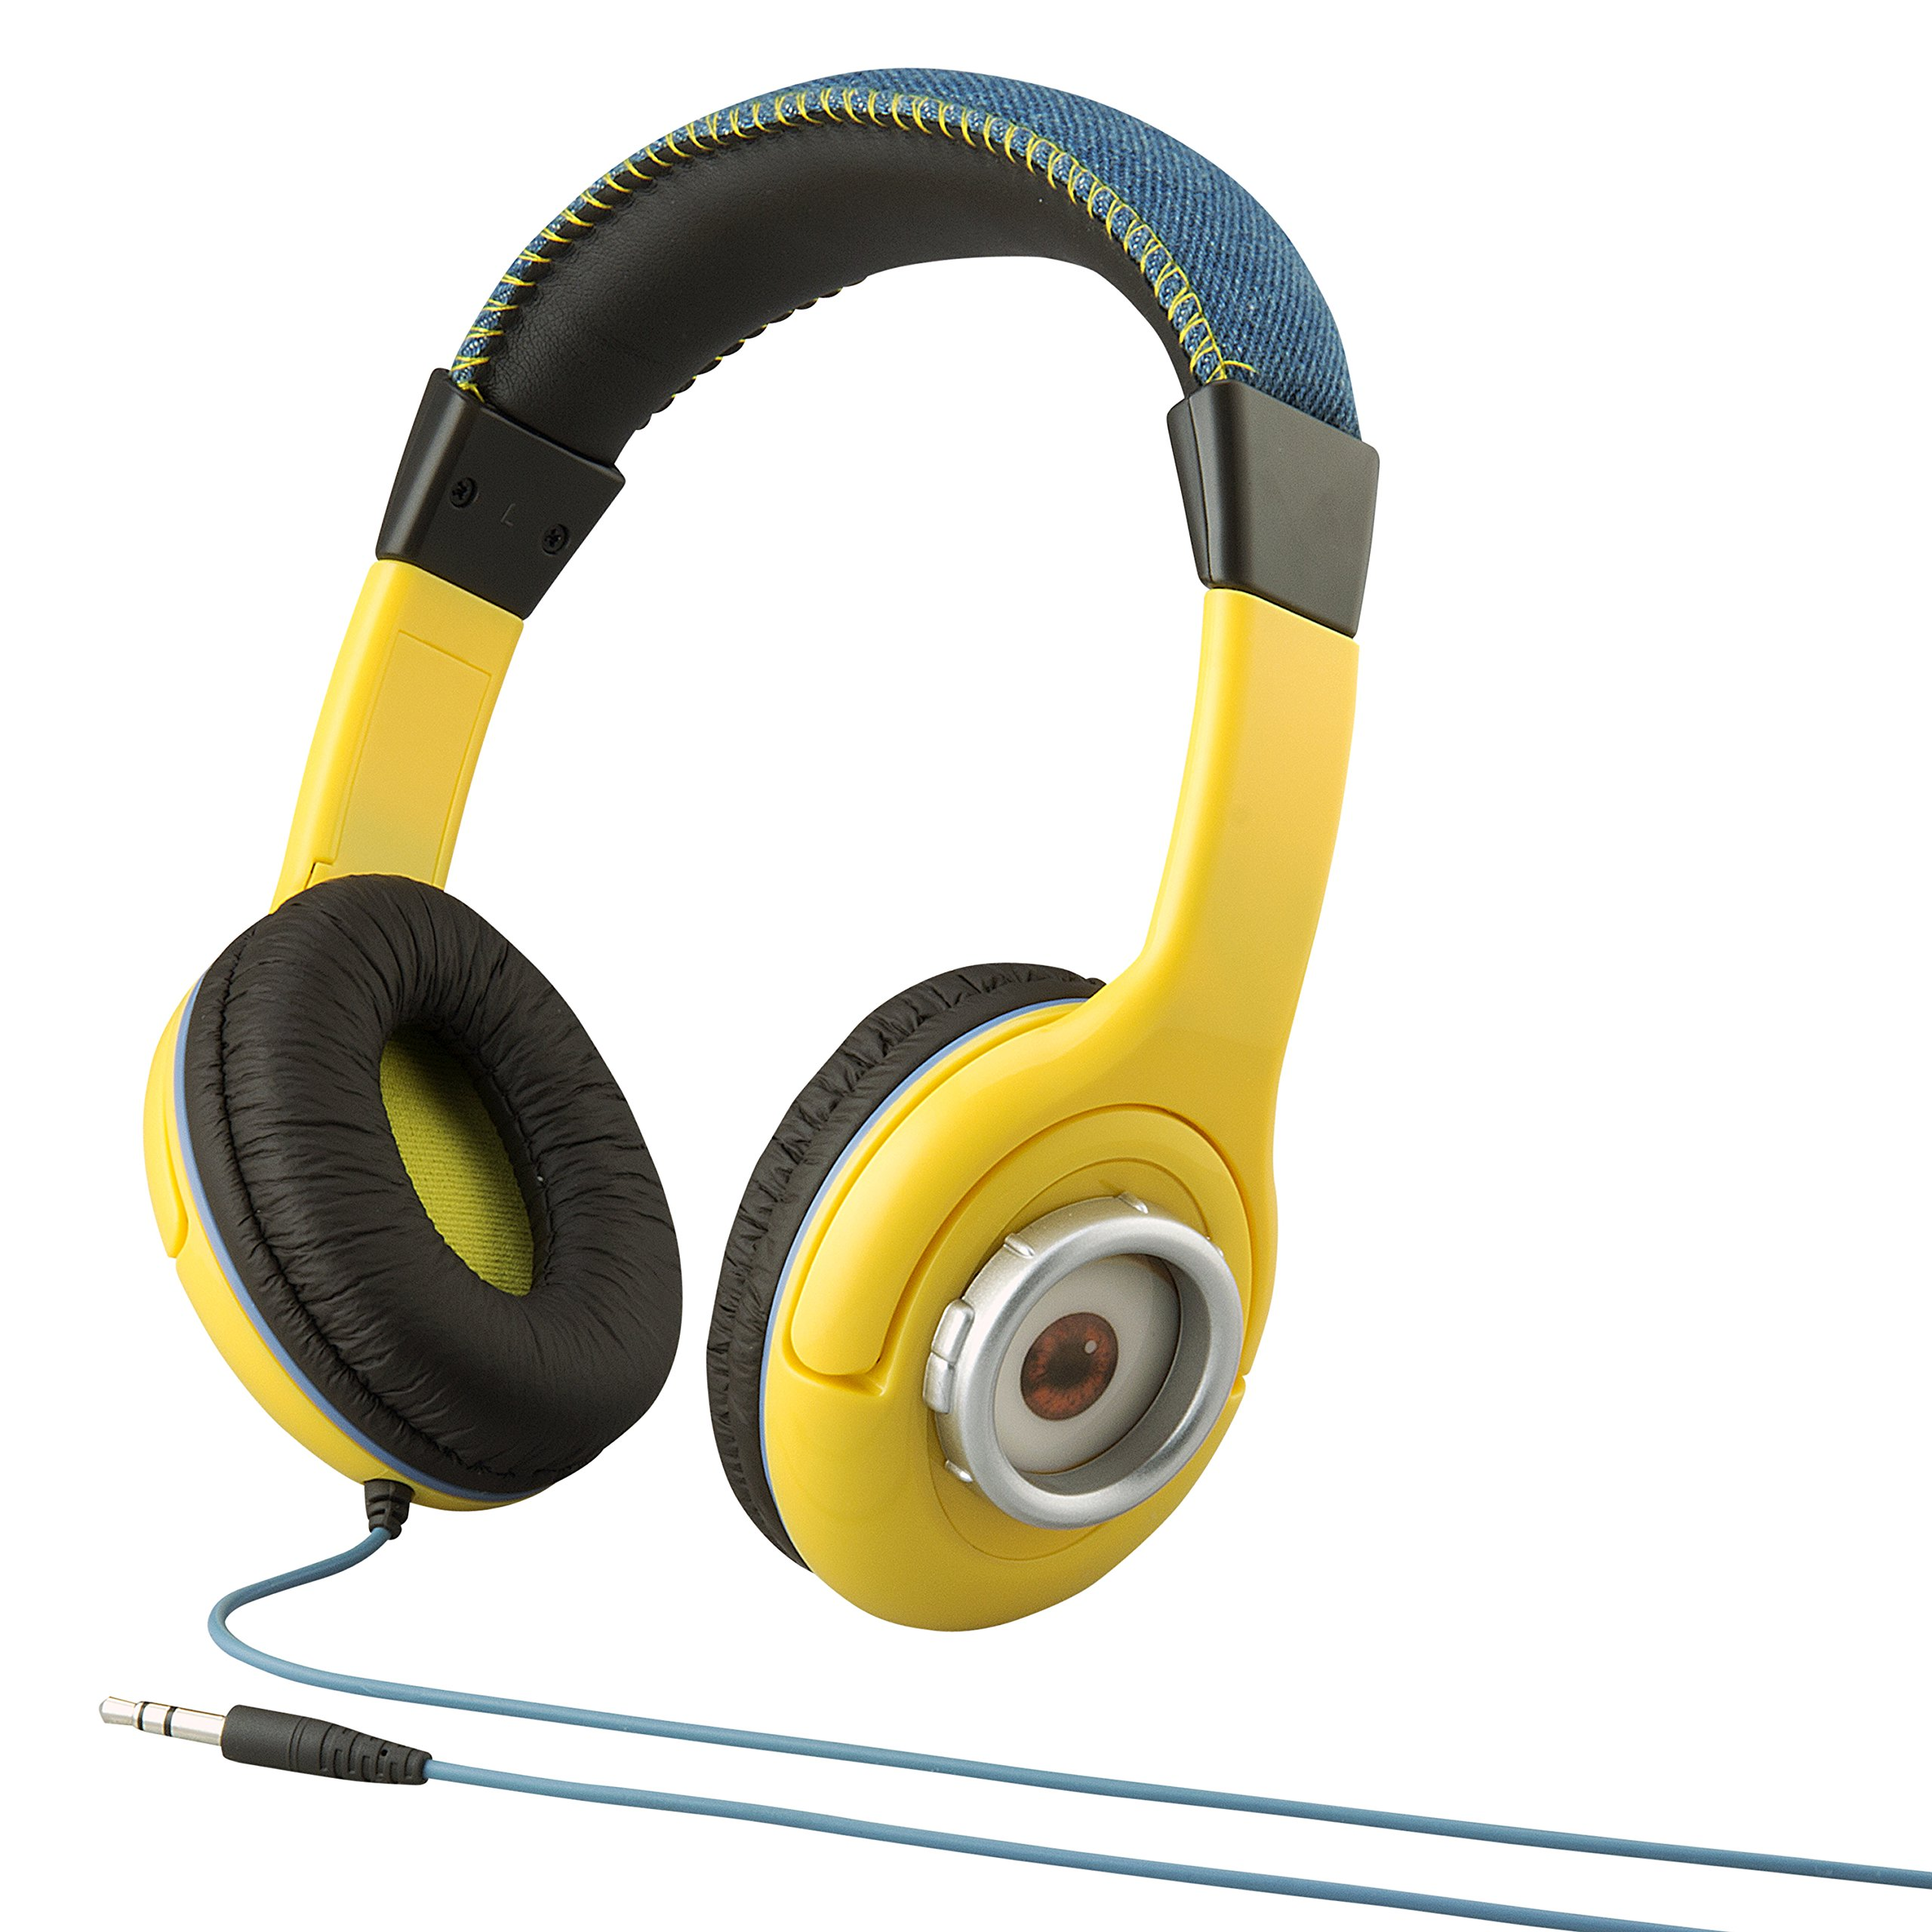 Minions Despicable Me Kid Friendly Headphones with Built in Volume Limiting Feature for Safe Listening